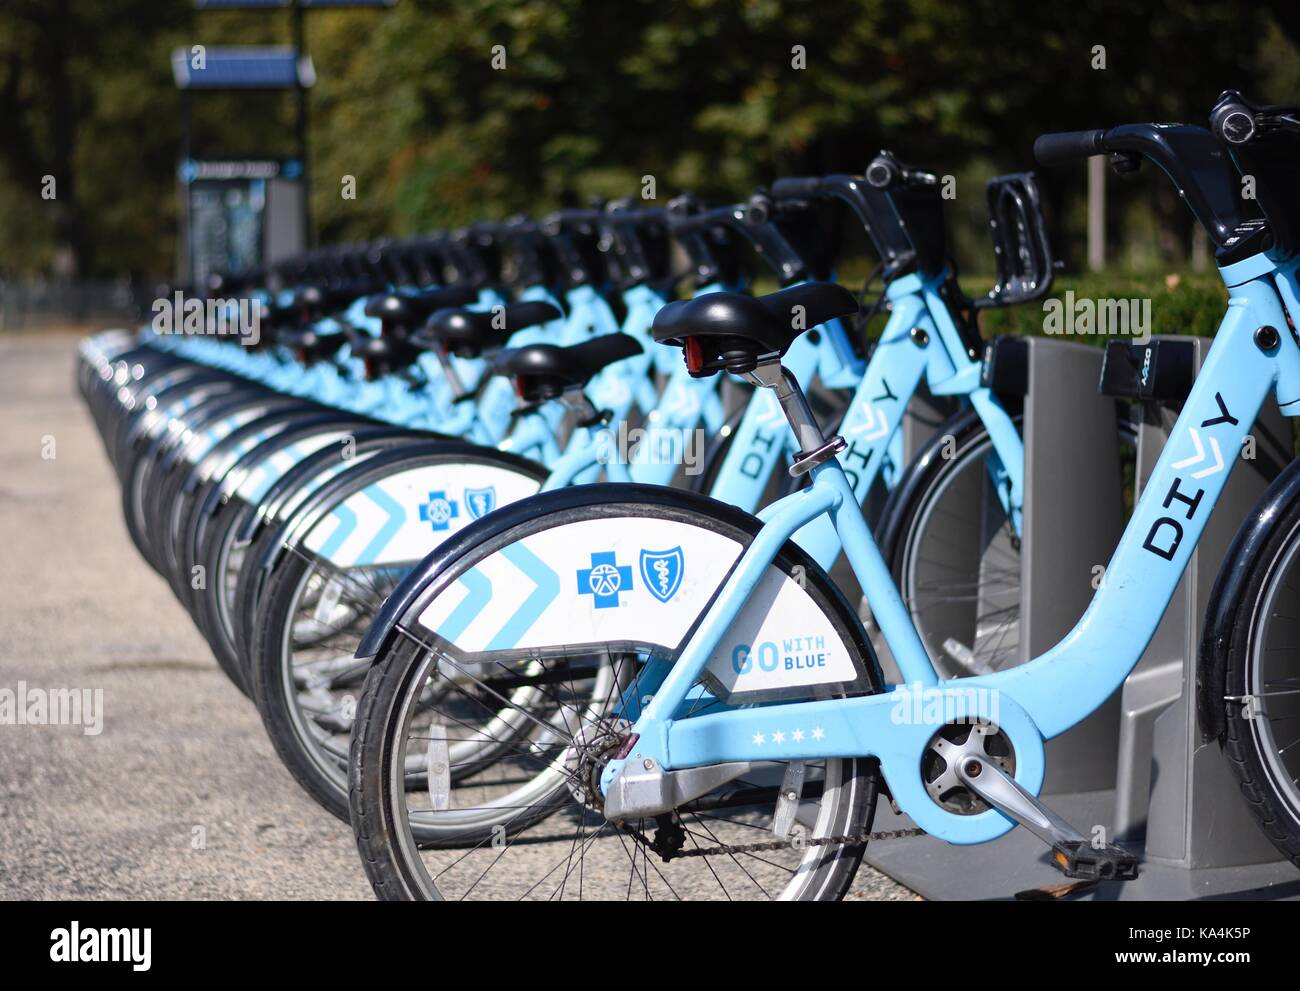 Rental Bikes in city of Chicago - Stock Image